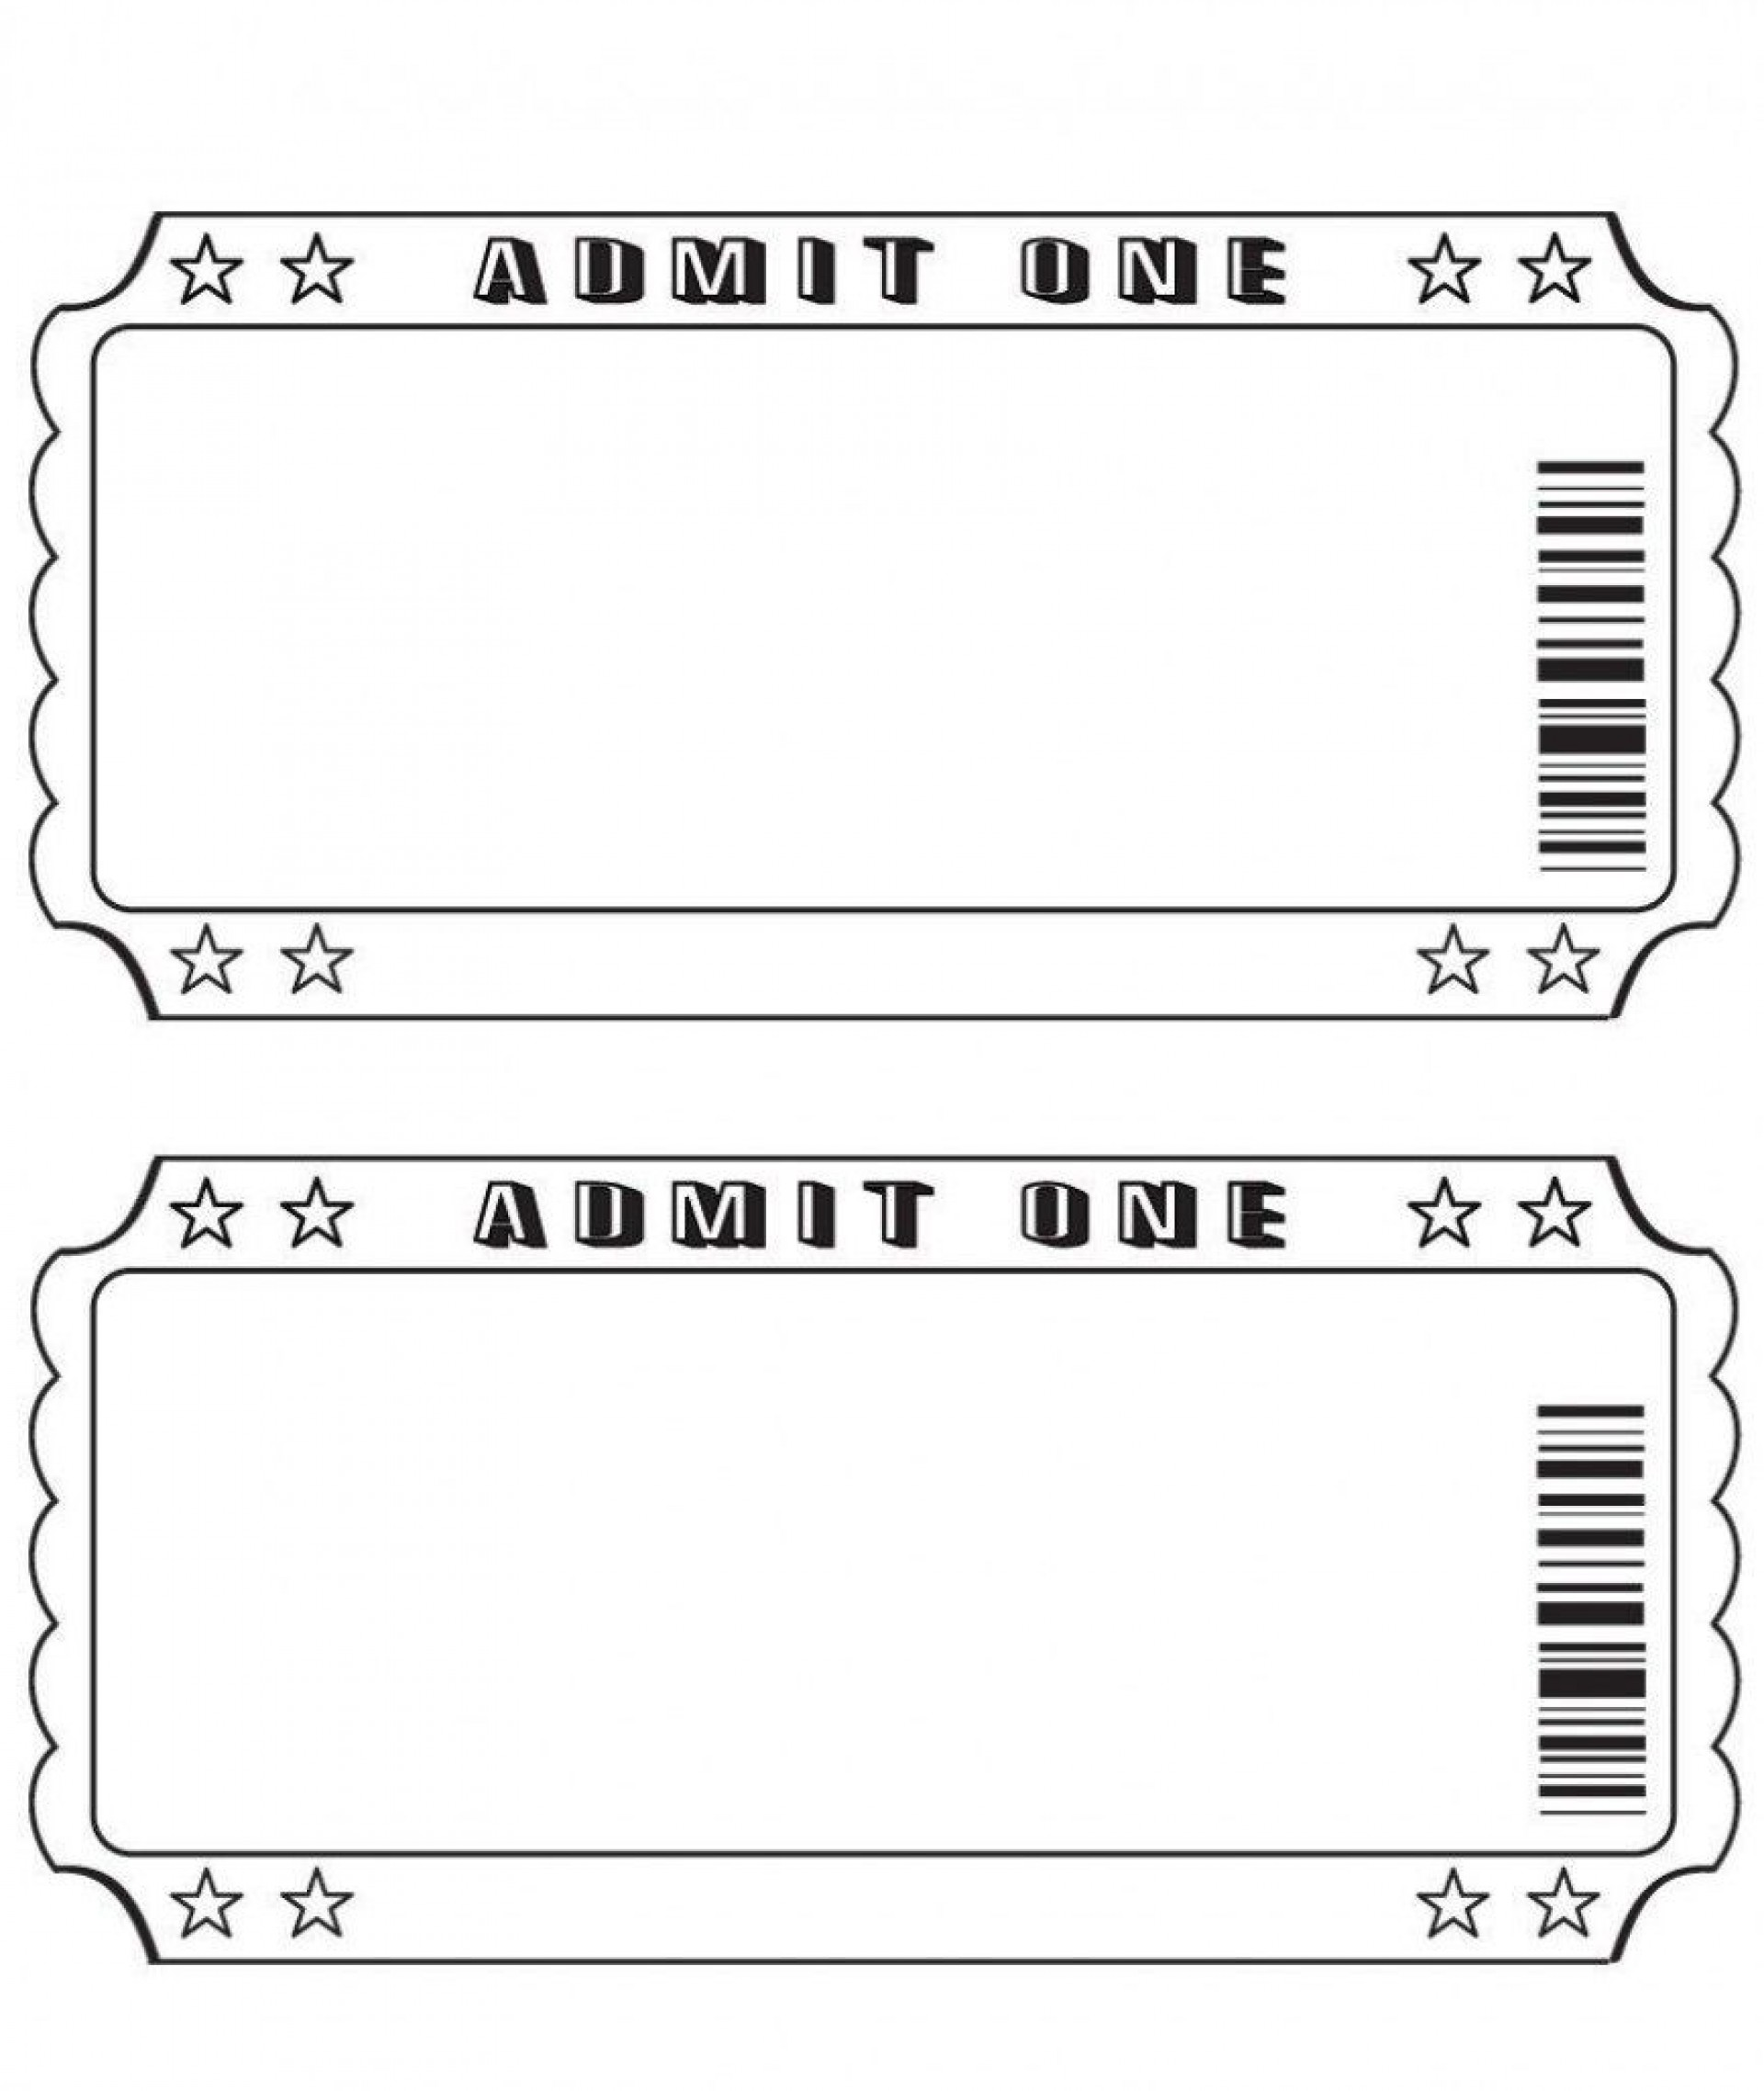 001 Unbelievable Editable Ticket Template Free Highest Clarity  Word Airline Raffle1920